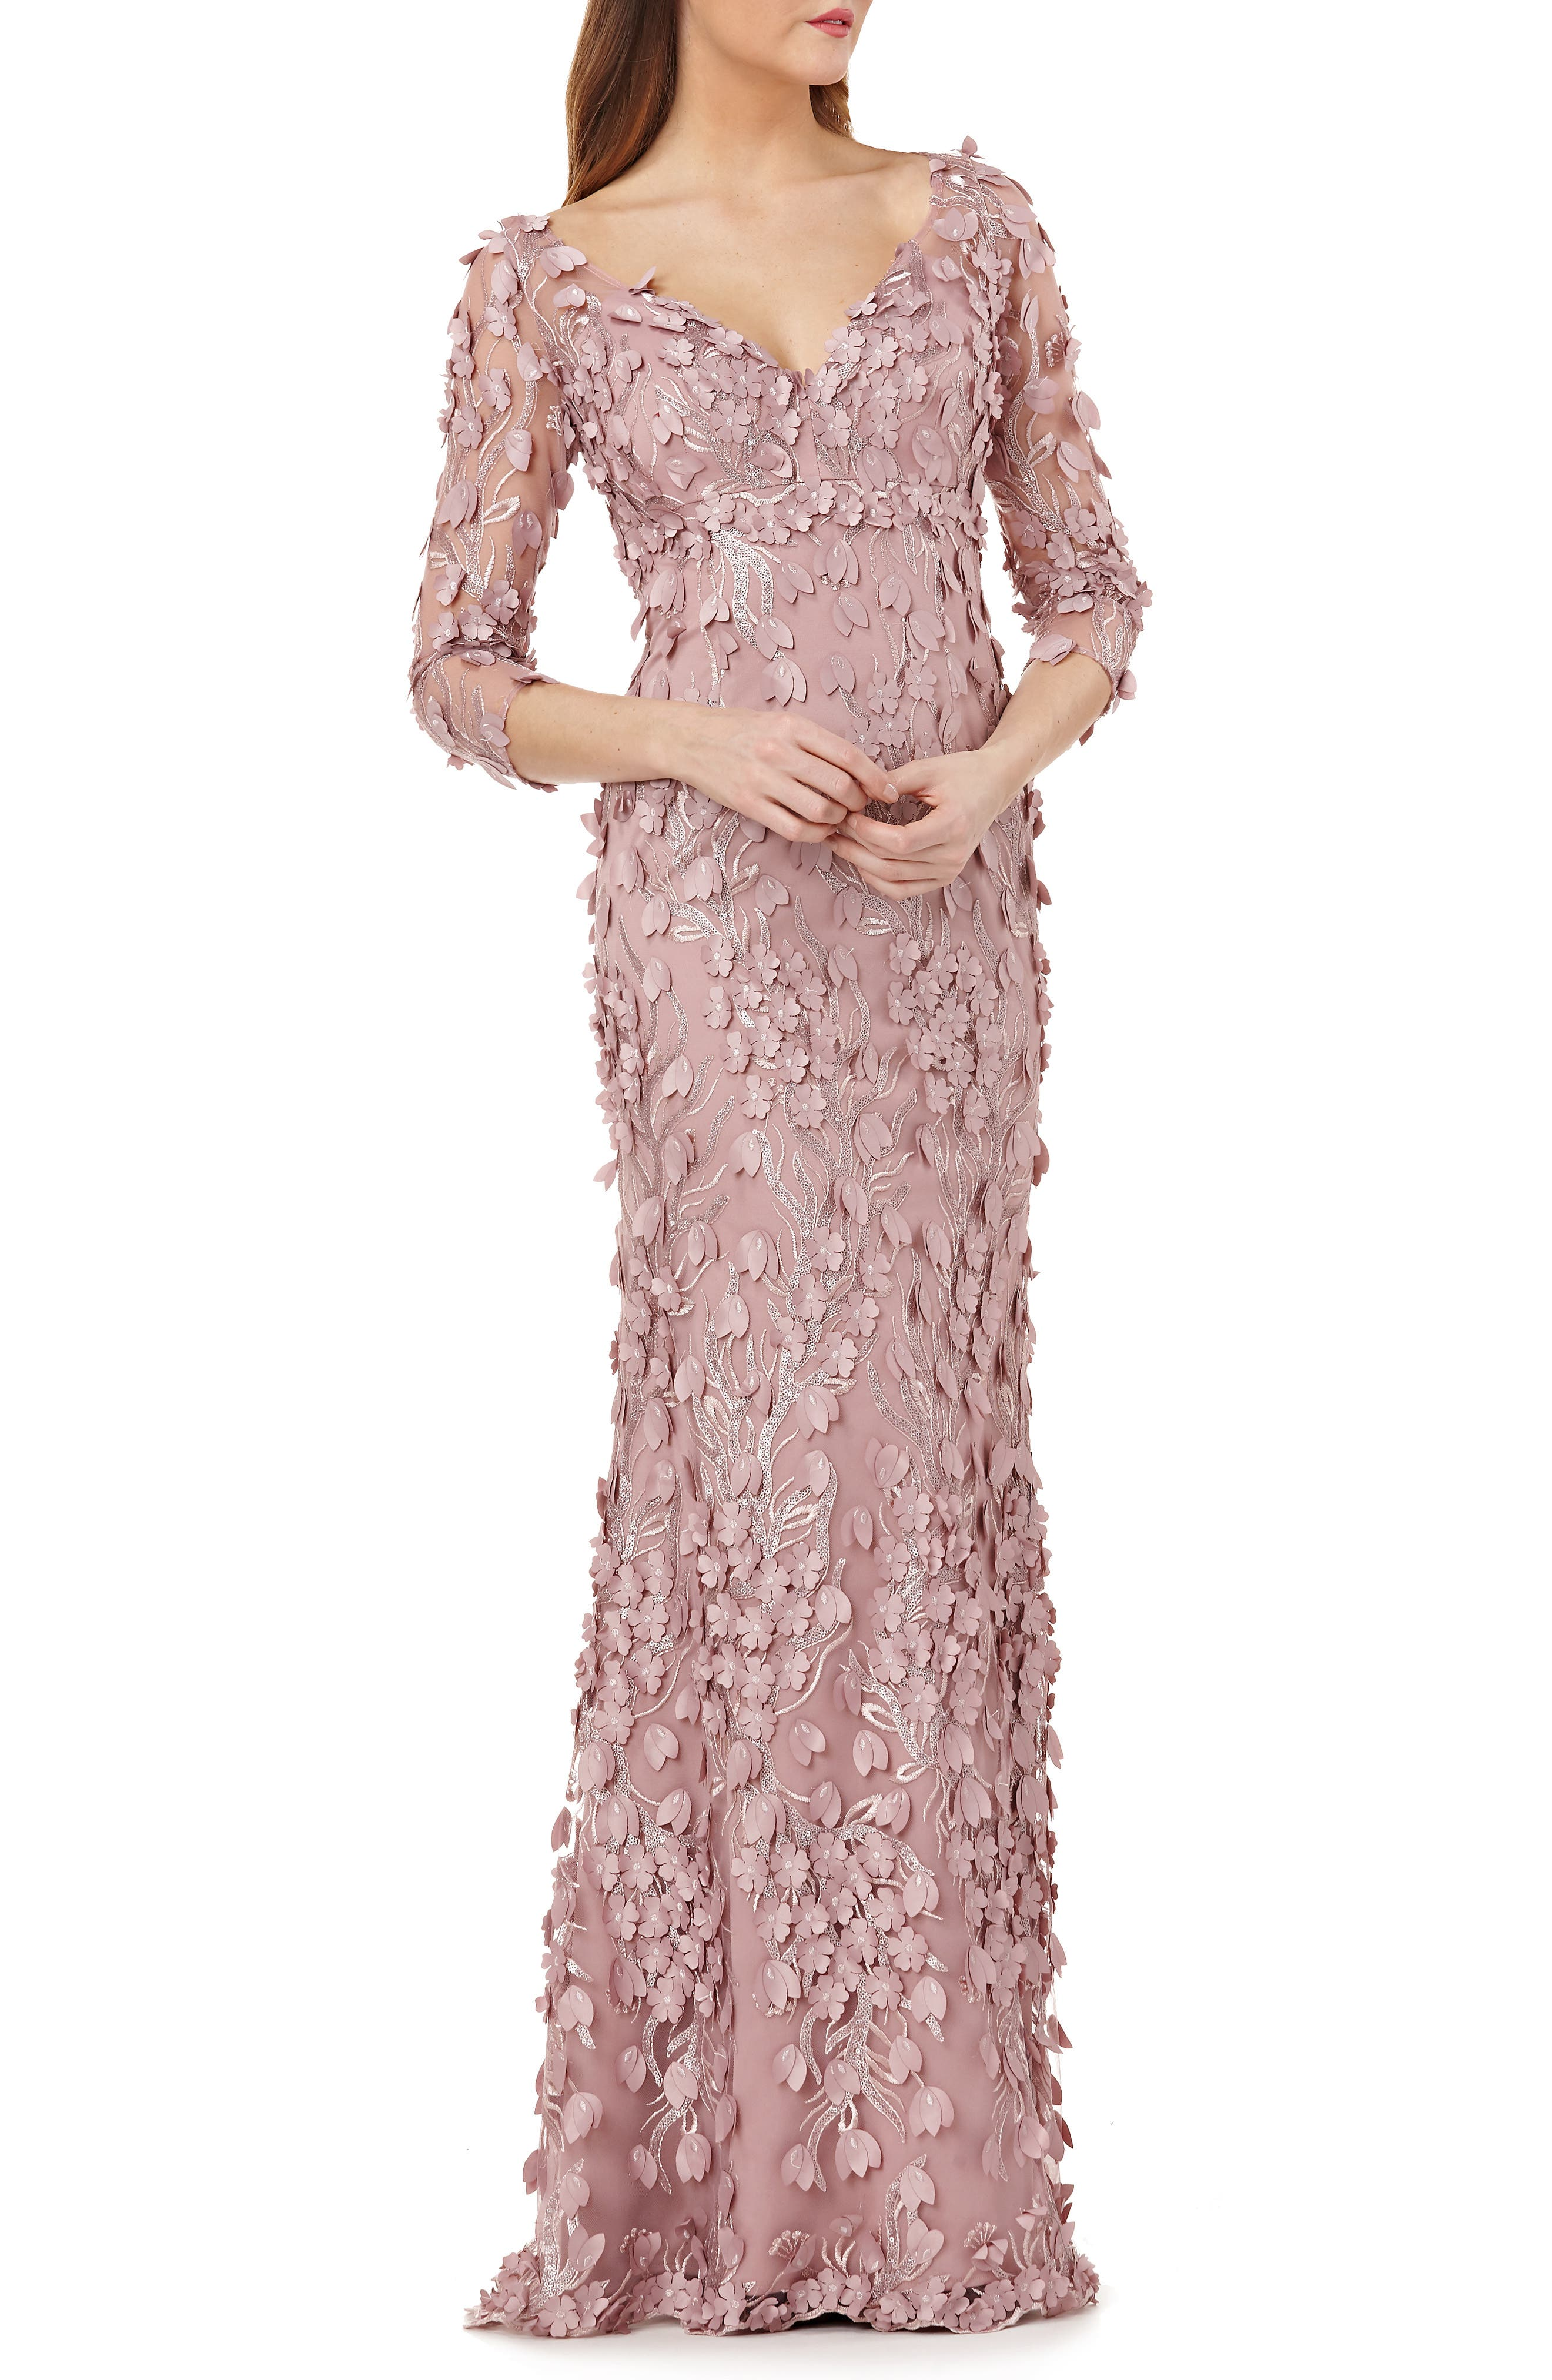 3D Novelty Gown,                             Main thumbnail 1, color,                             DUSTY ROSE